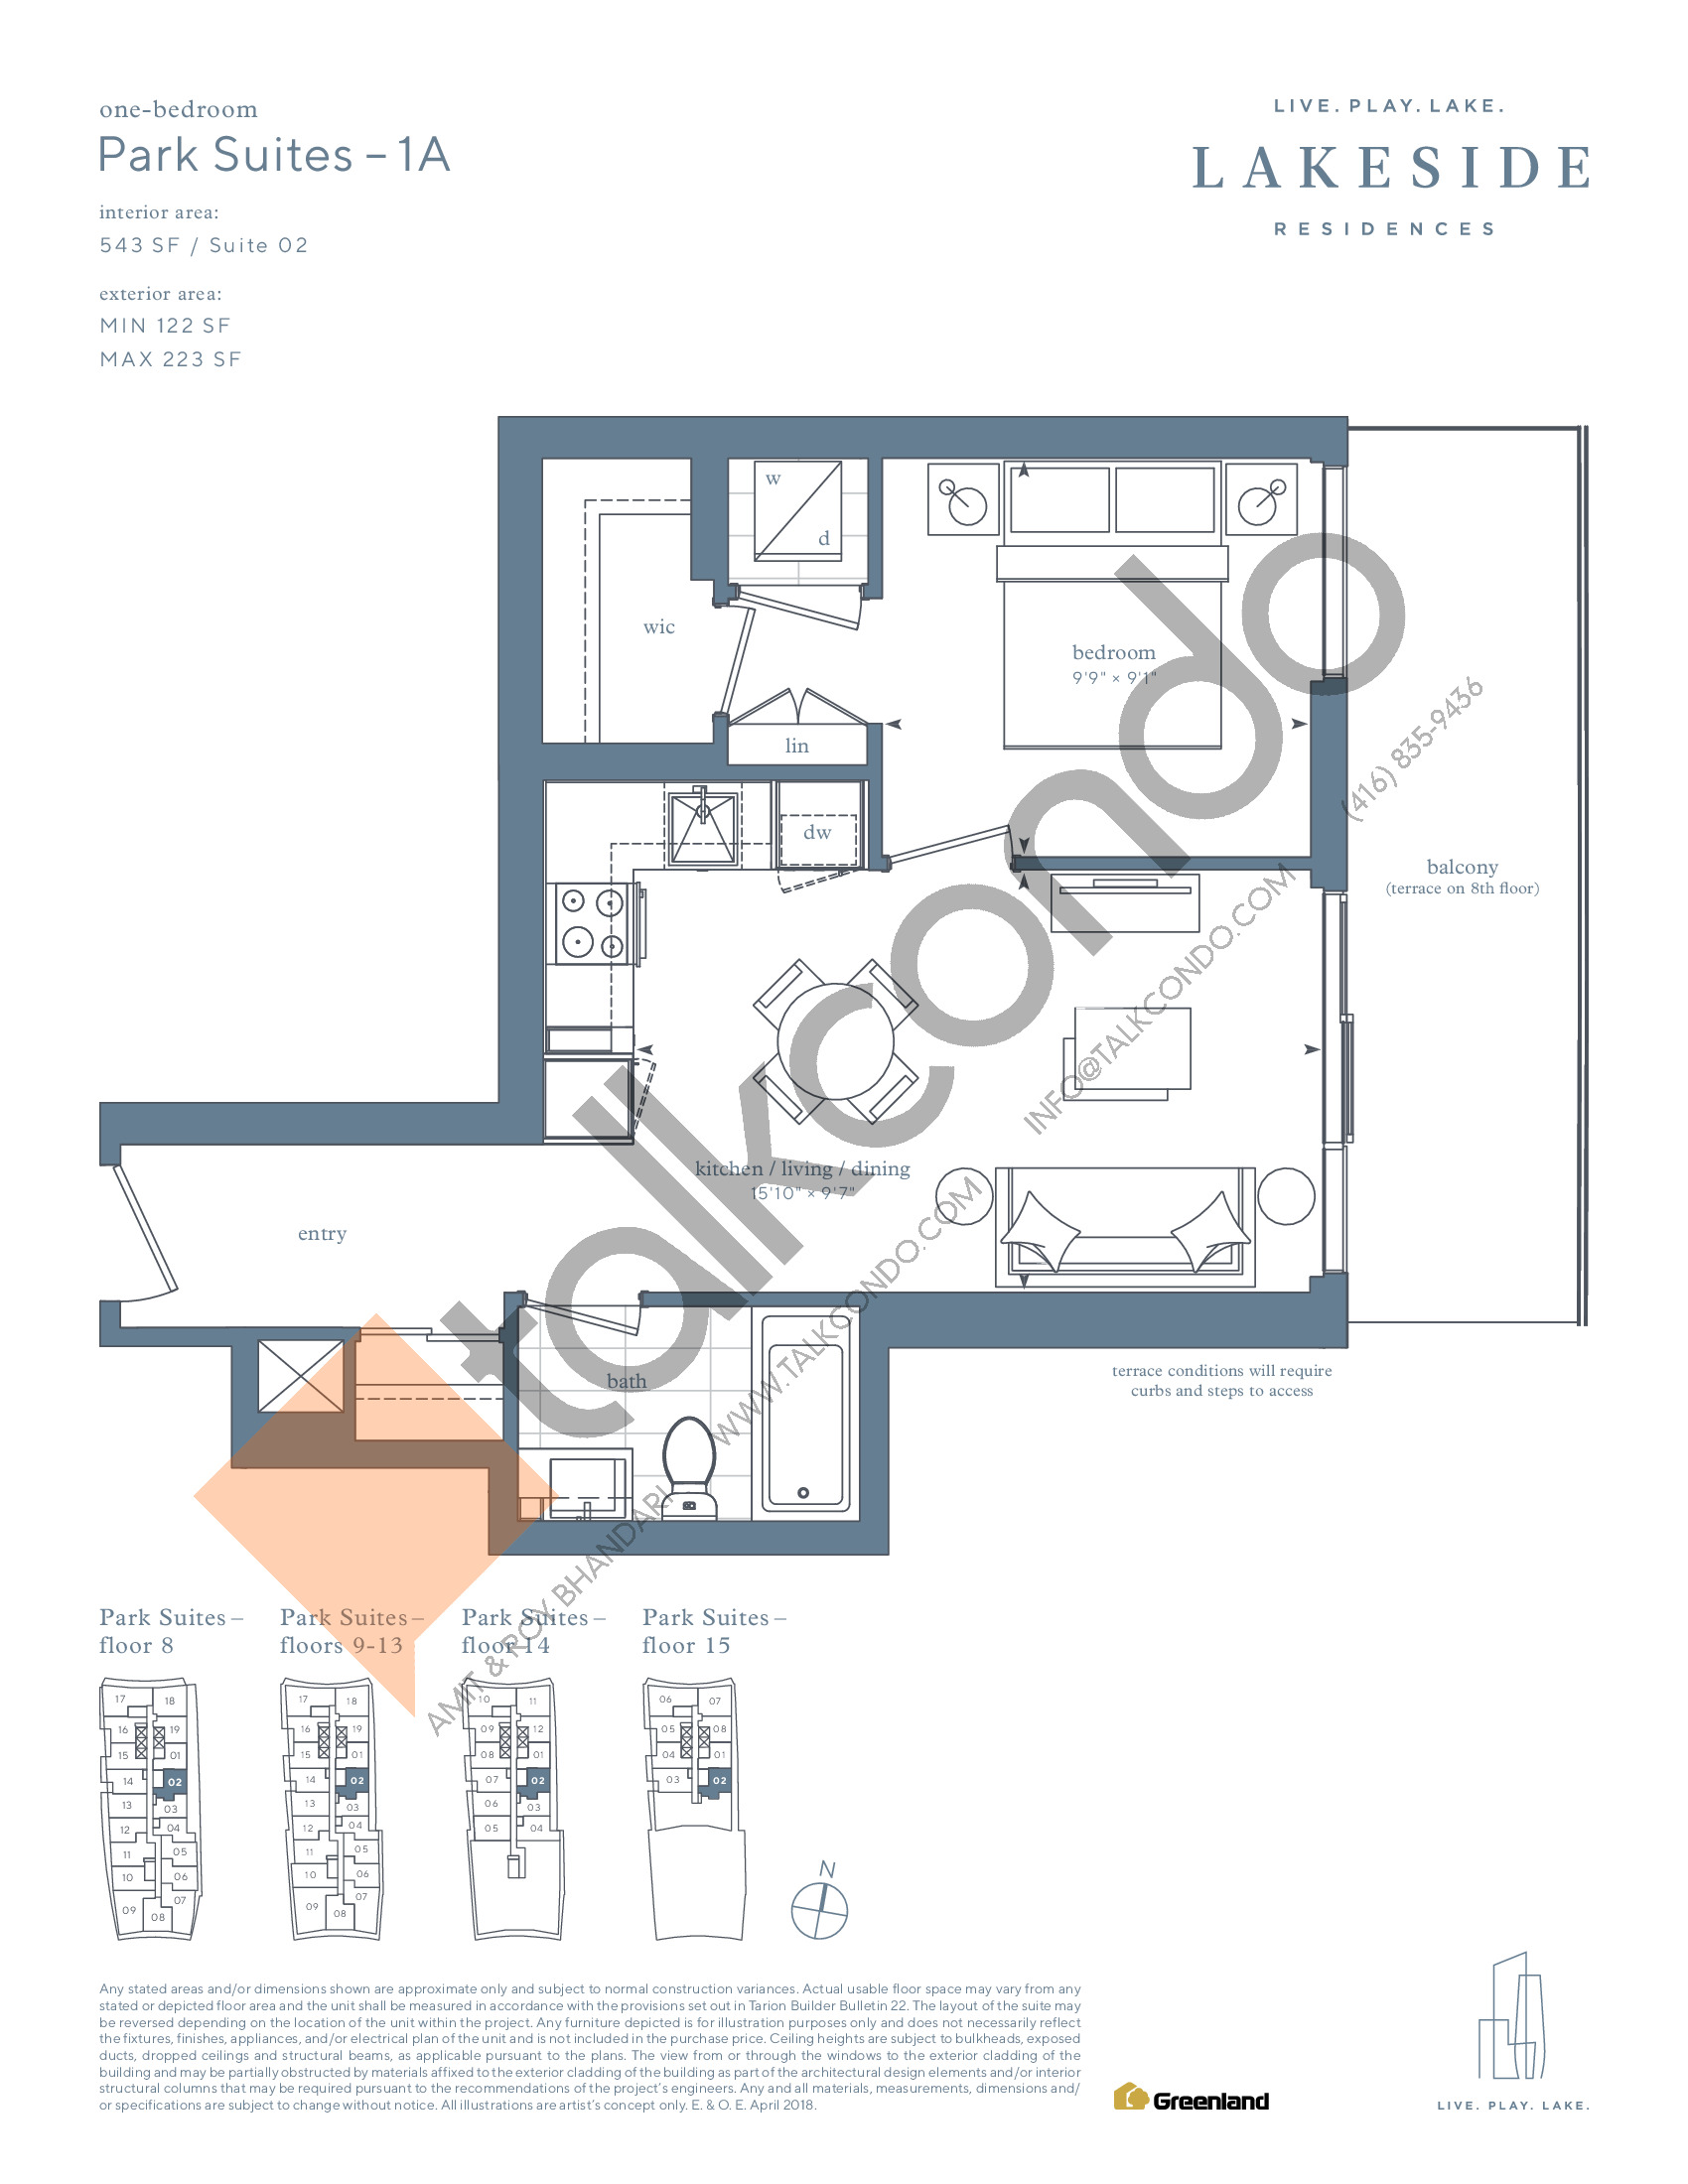 Park Suites - 1A Floor Plan at Lakeside Residences - 543 sq.ft